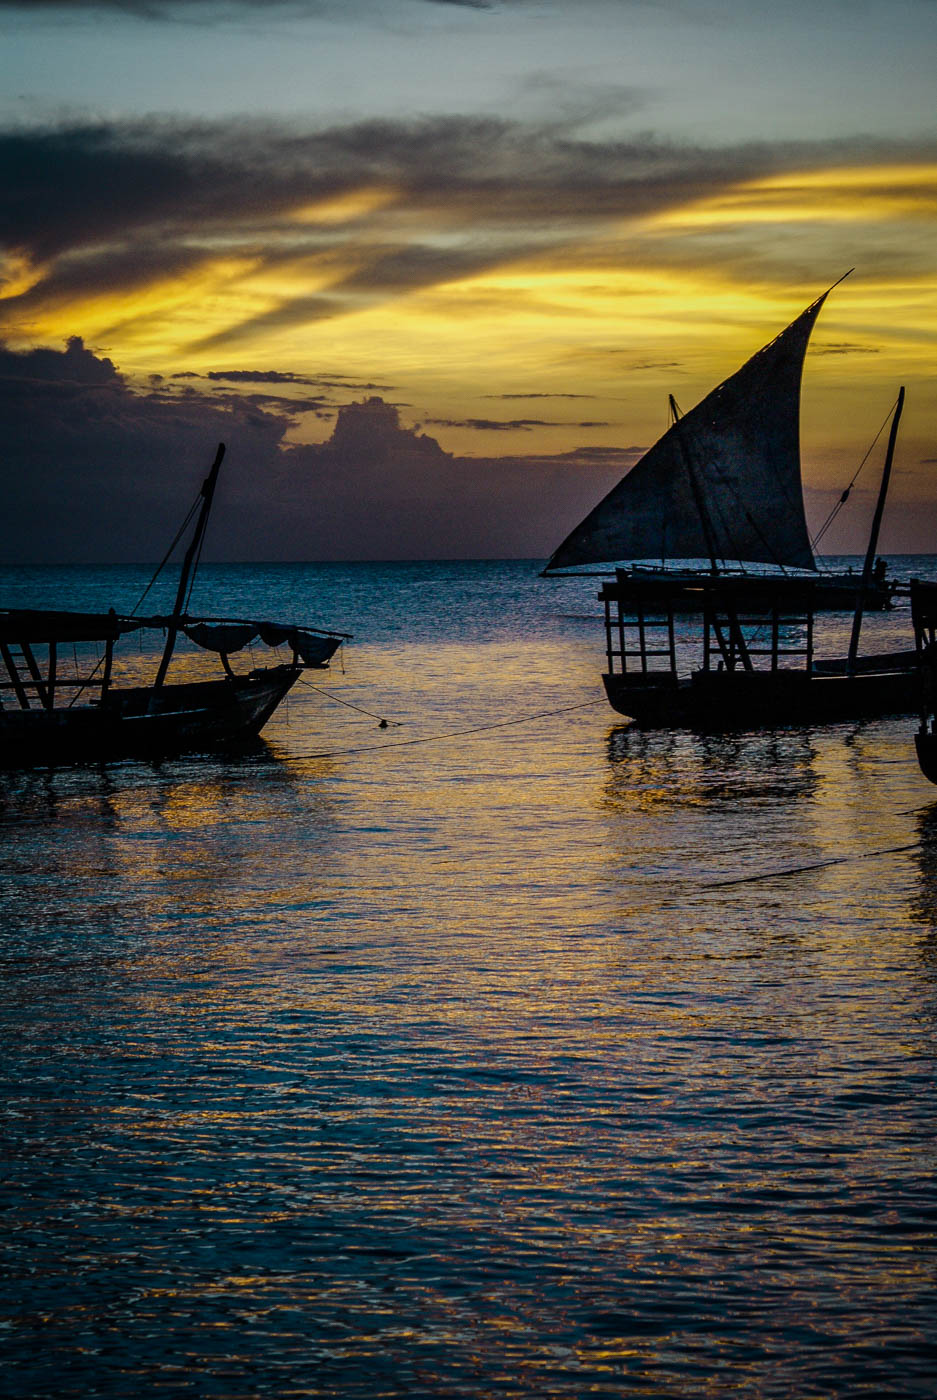 Sunset in Stone Town - Tanzania and Zanzibar - an exotic adventure. Beaches I Stone Town I Africa Travel I Dar Es Salaam #traveldestinations #traveltheworld #tanzania